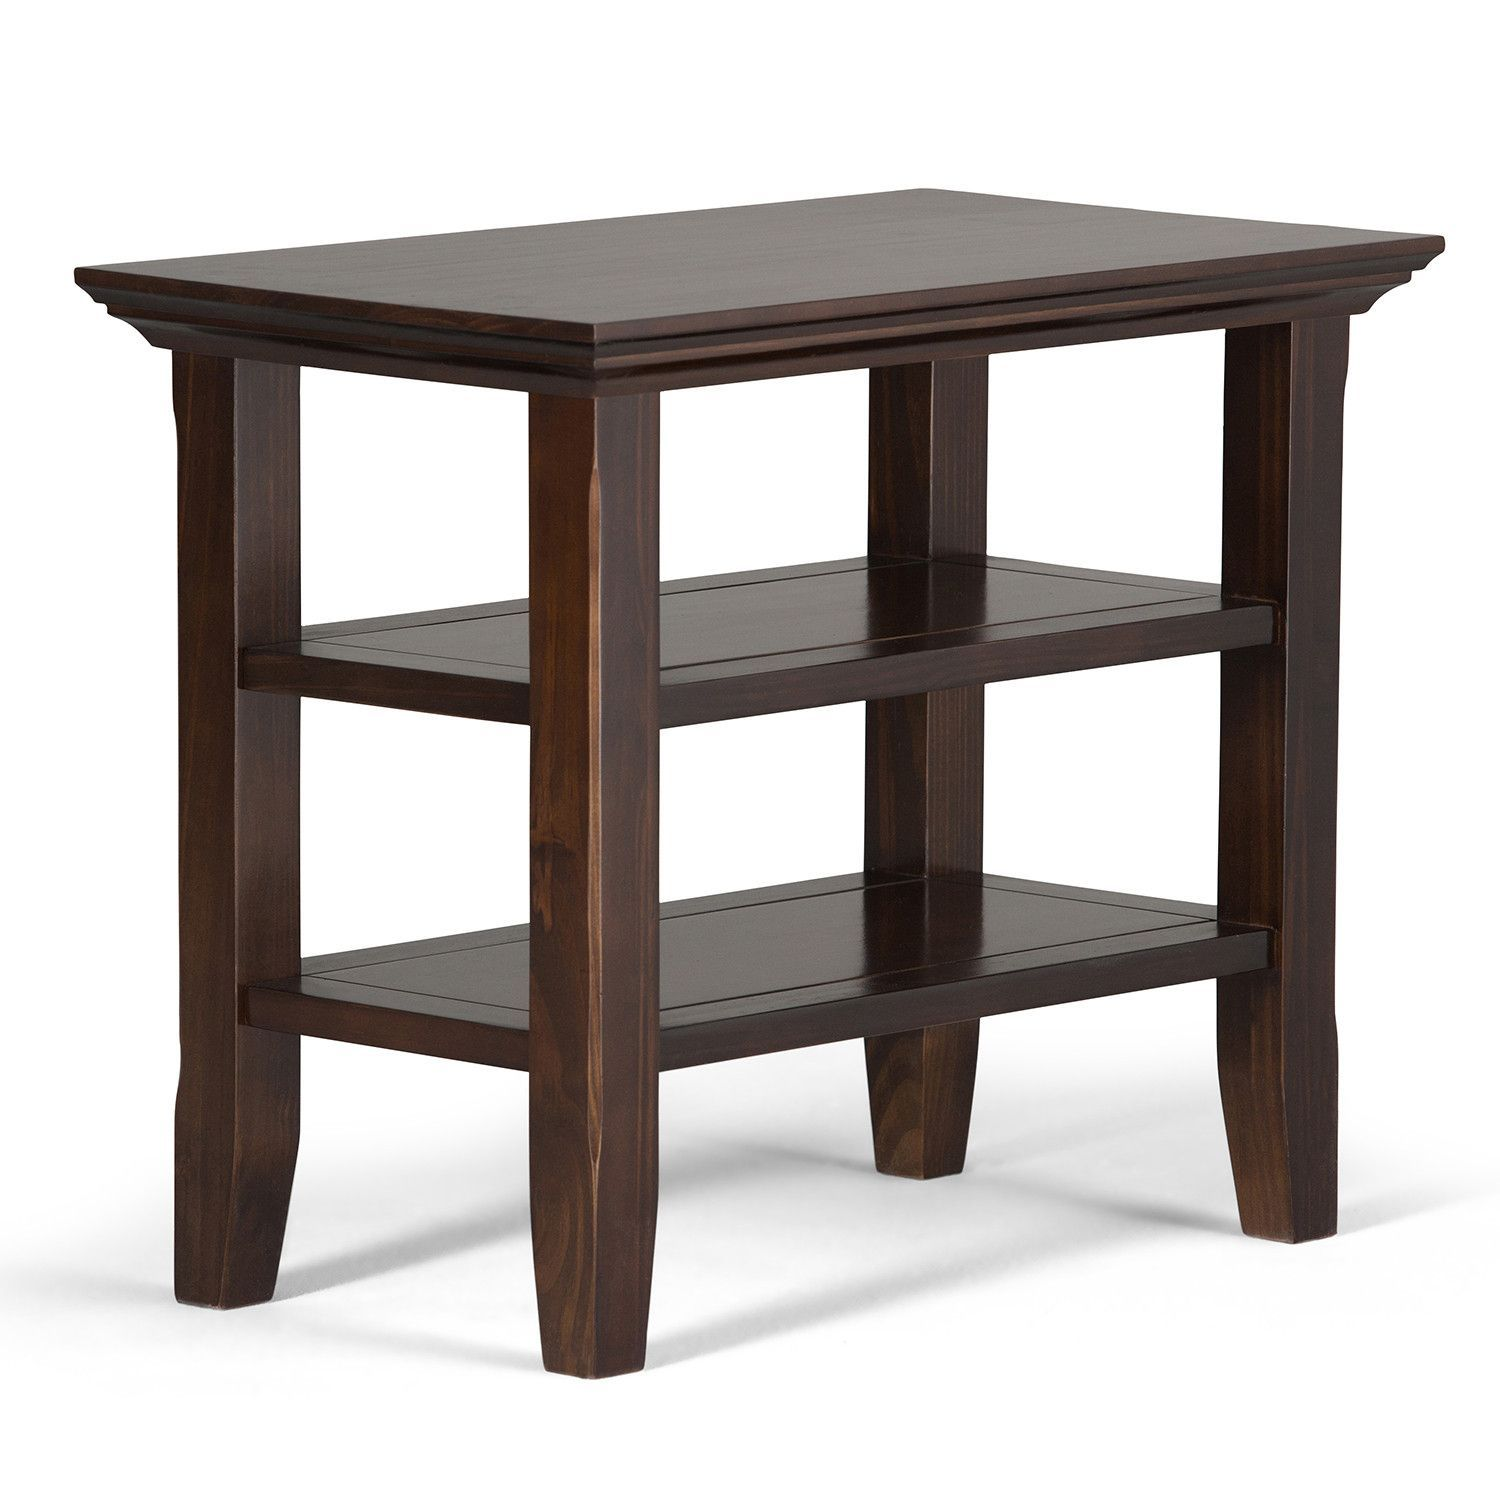 Acadian 14 X 24 20 Inch Narrow Side Table In Brown